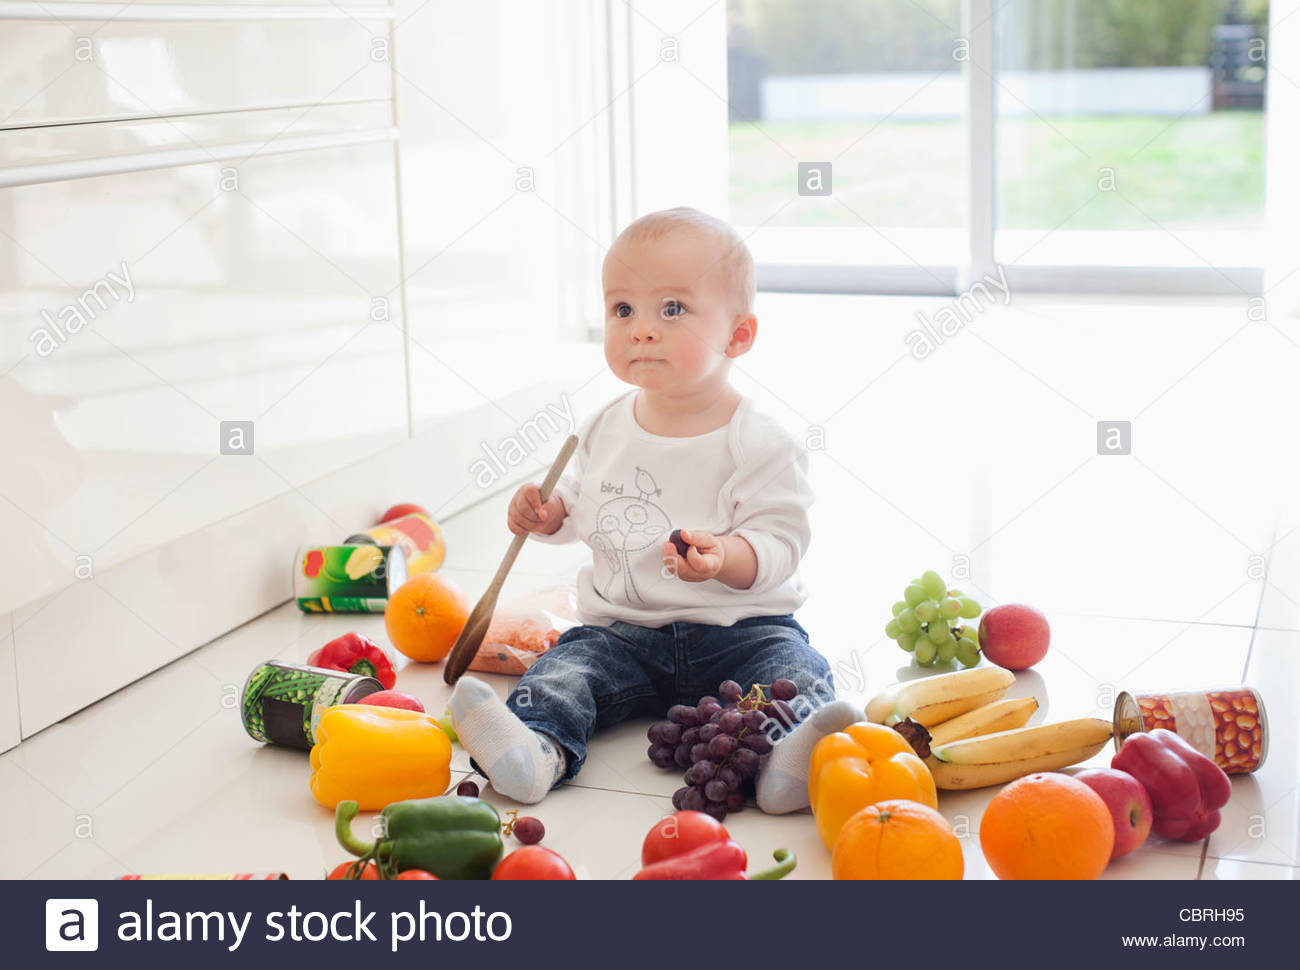 Baby making mess on floor with food - Stock Image